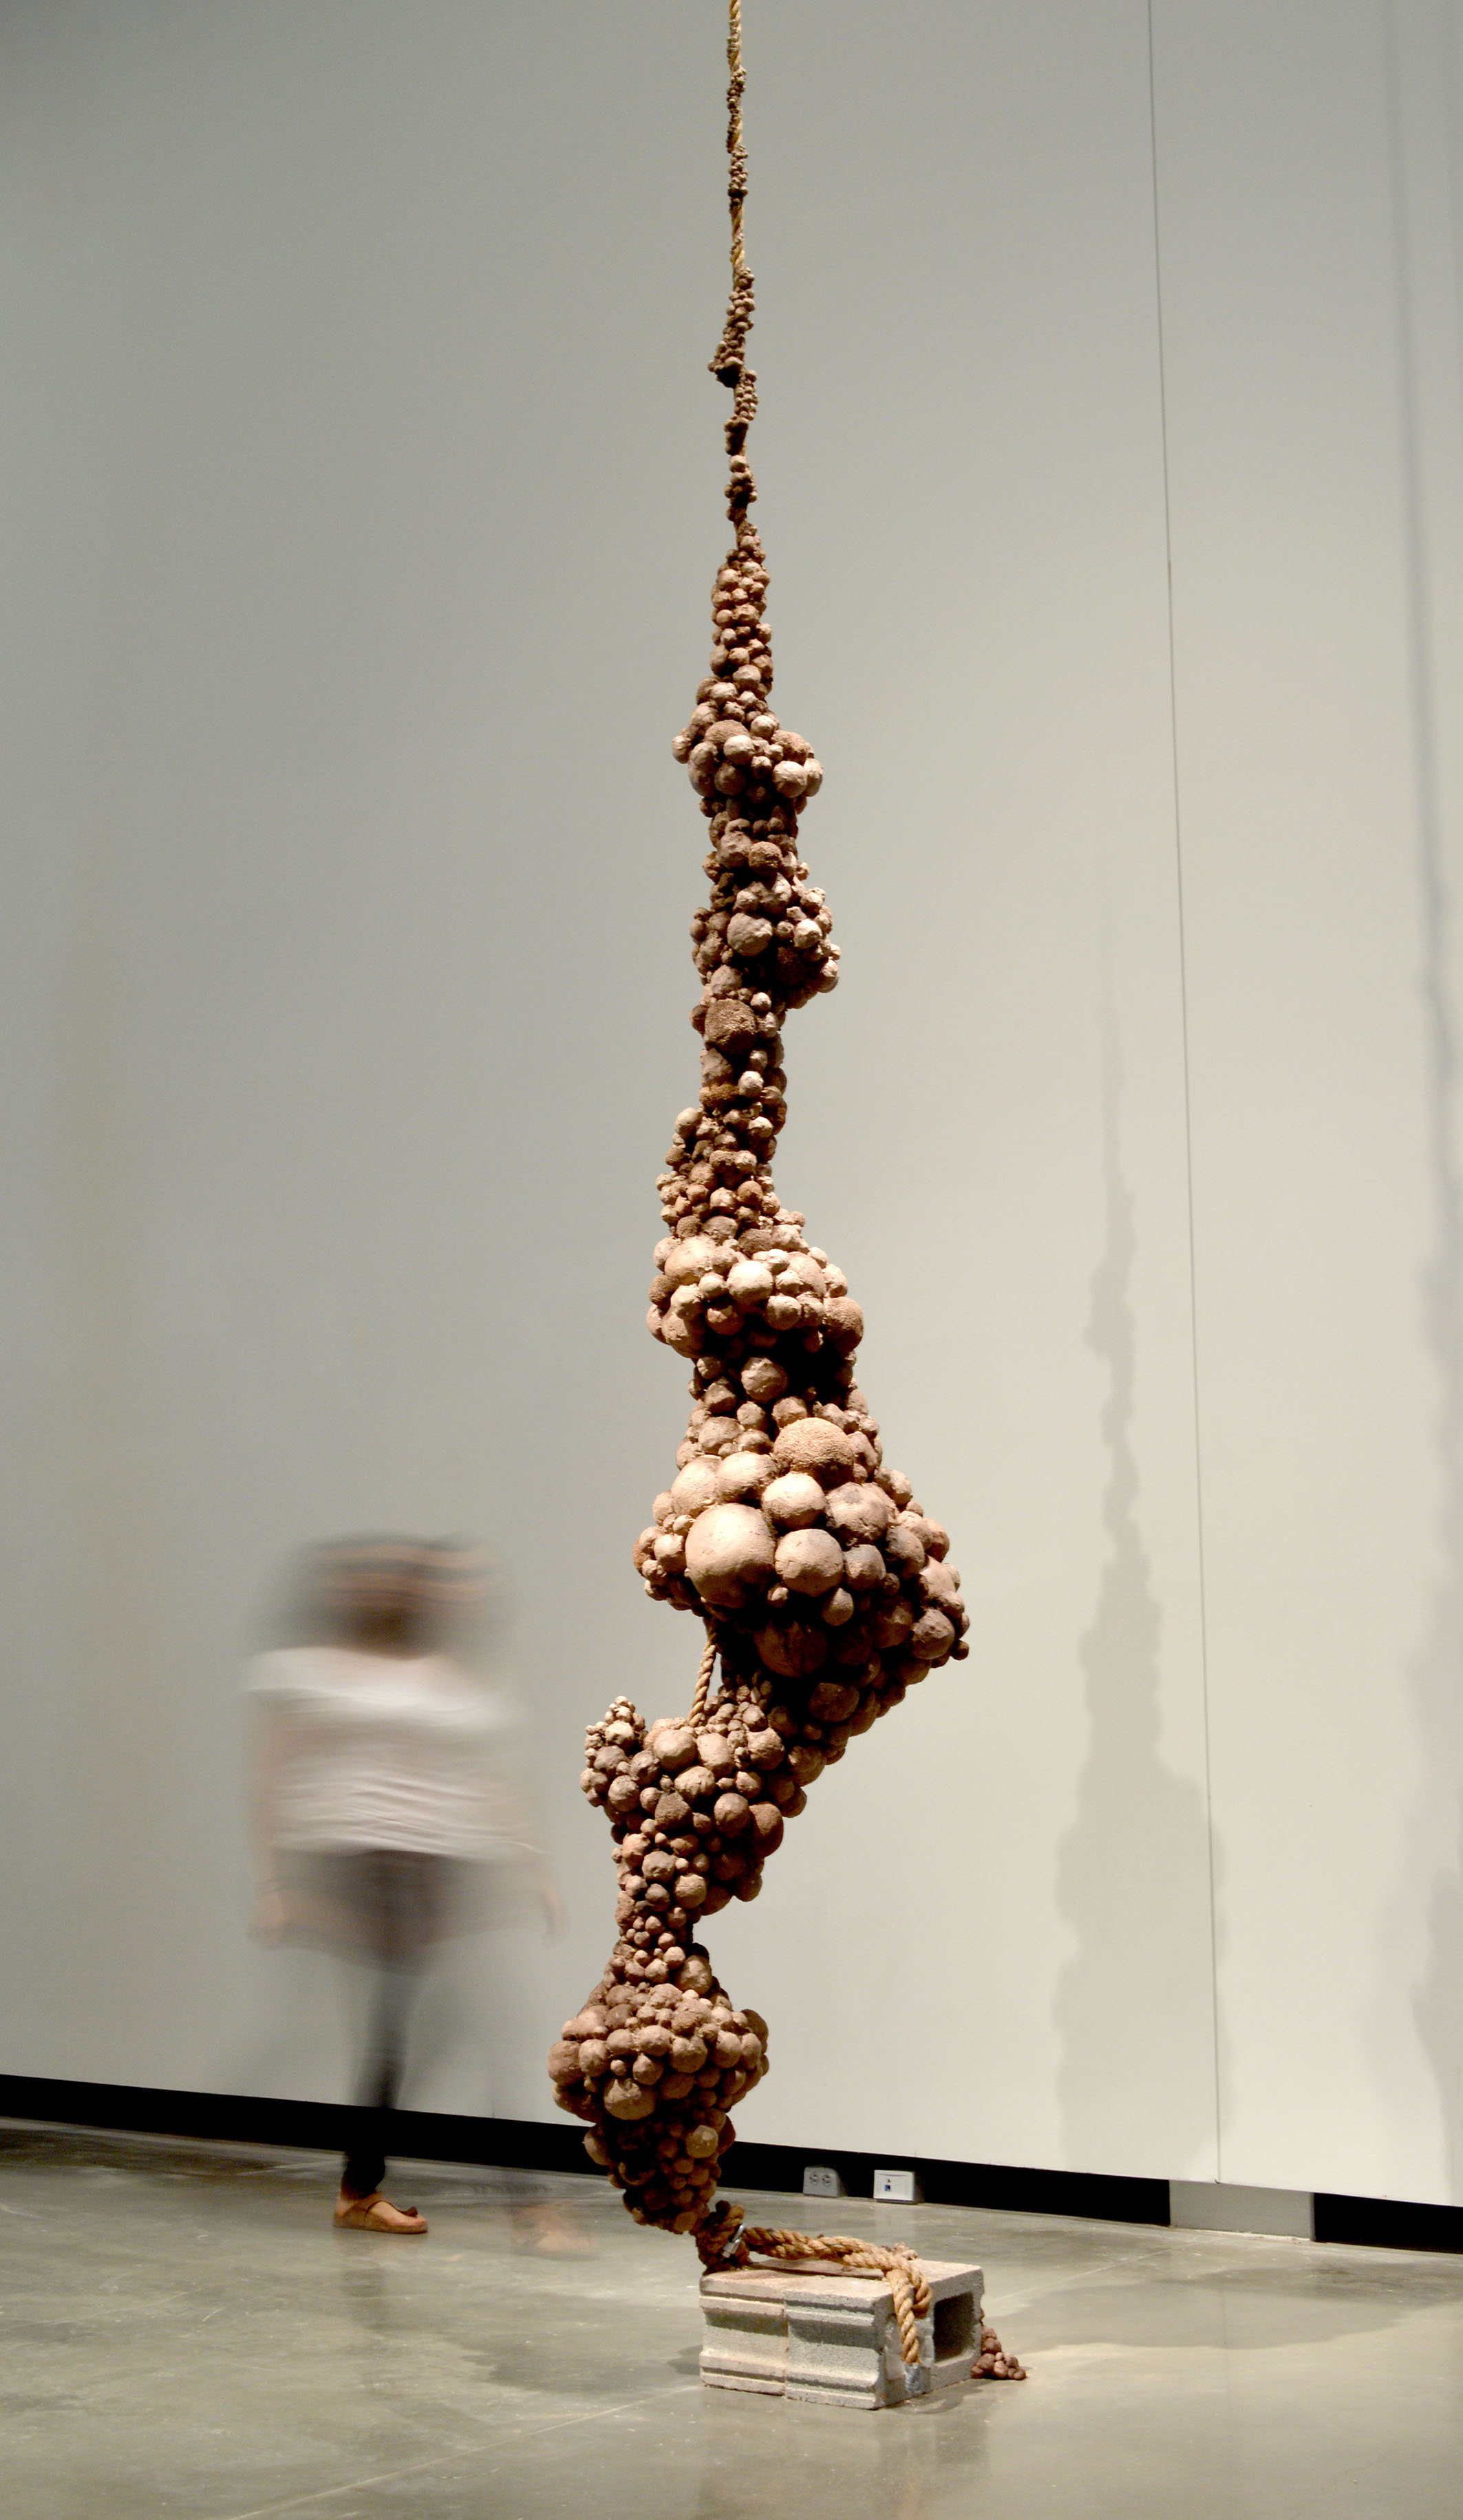 A towering work embraces verticality, crafted in raw clay, by Patricia Mato-Mora